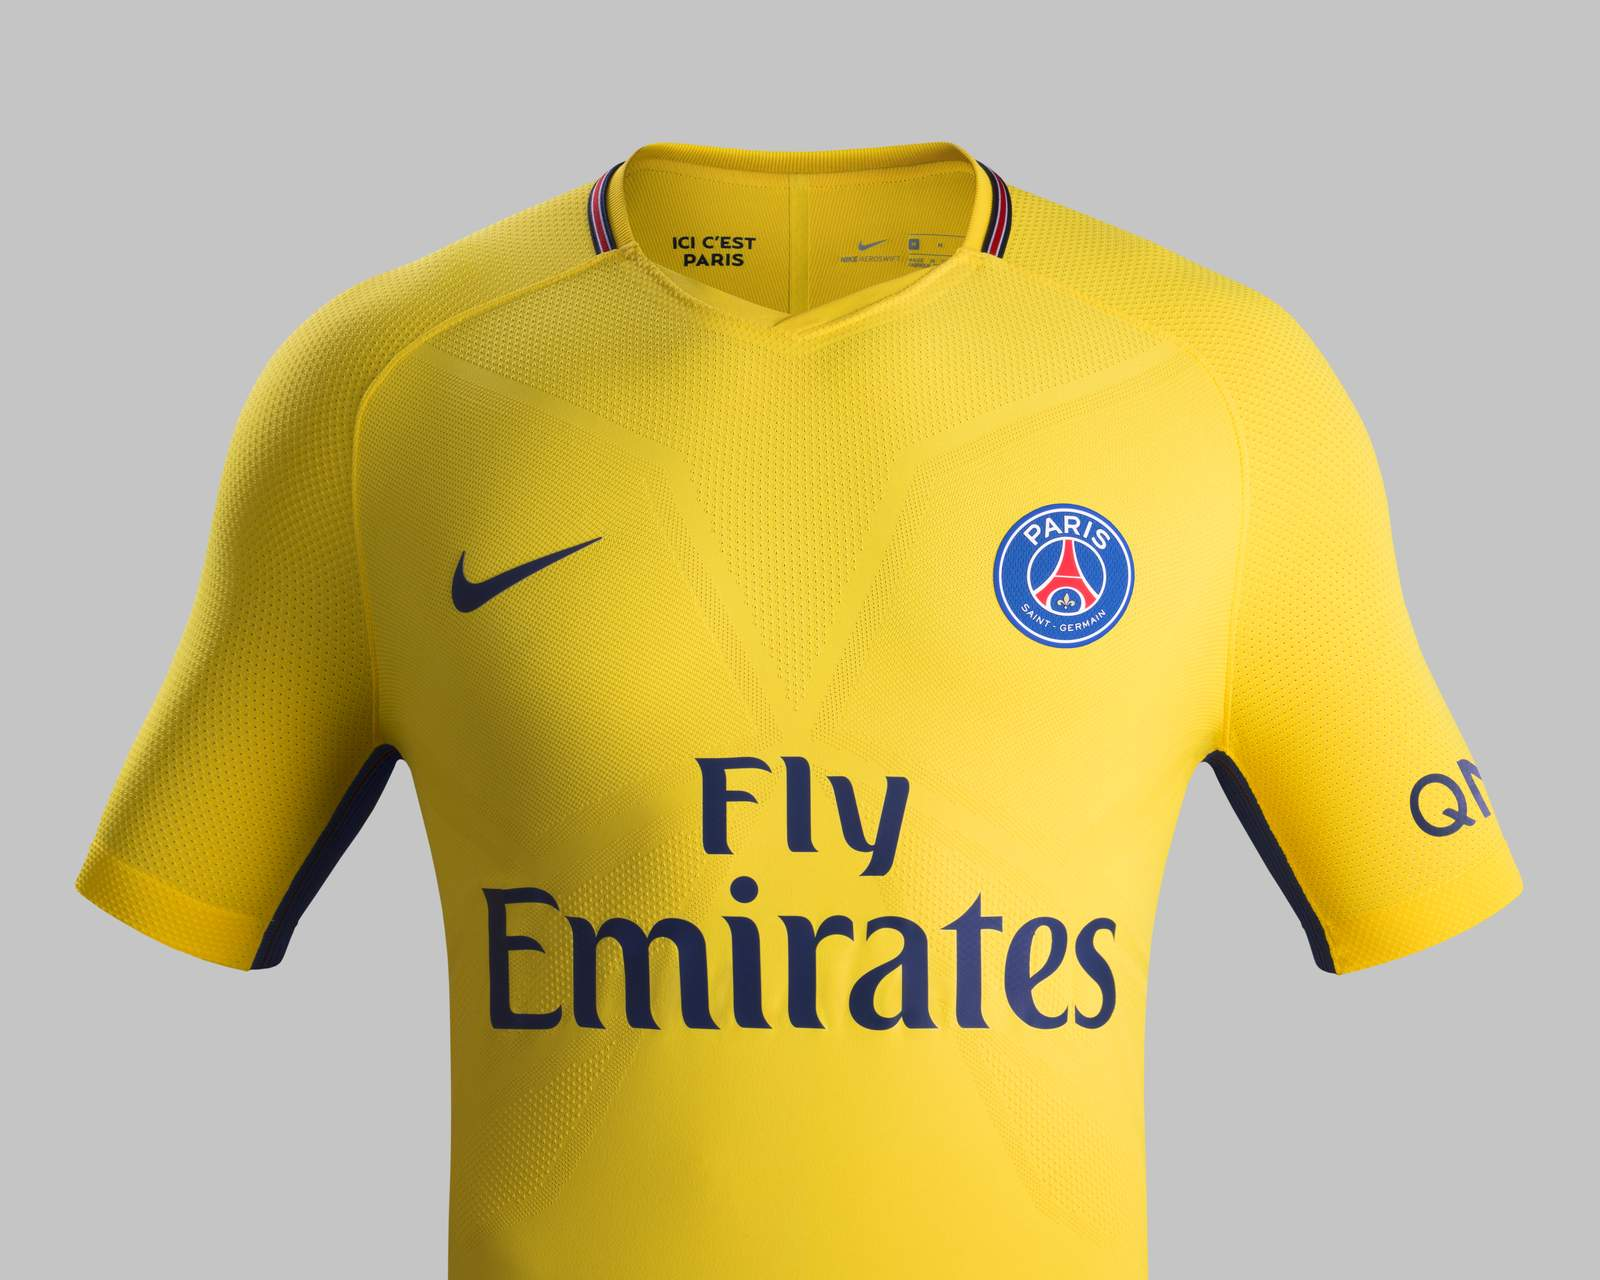 Paris saint germain 17 18 away kit revealed footy headlines for Maillot exterieur psg